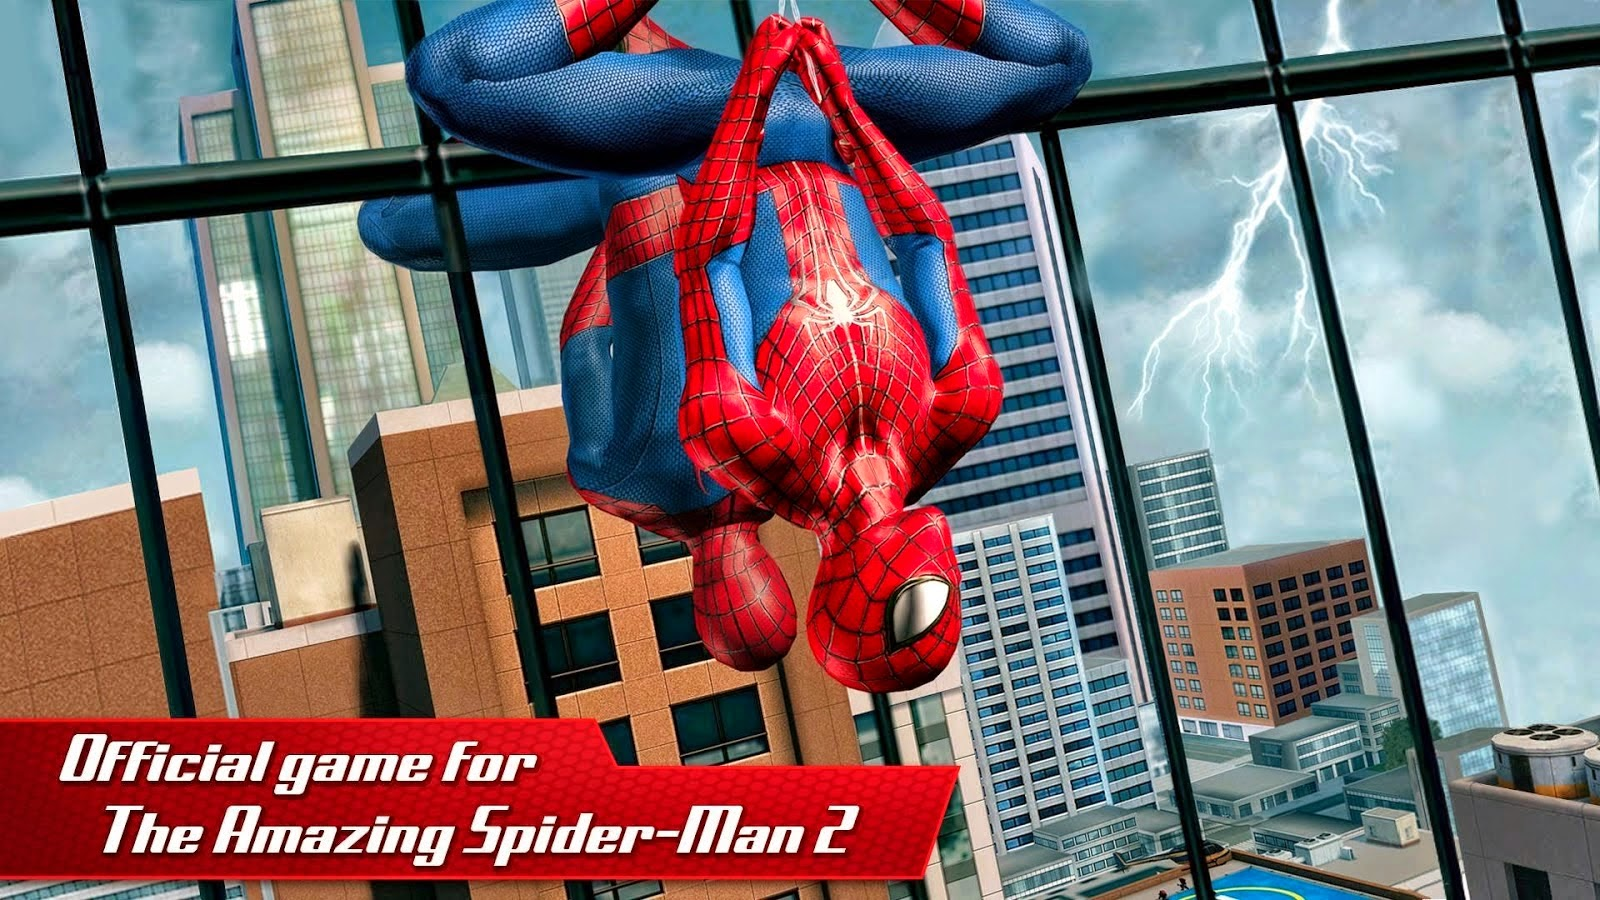 http://www.freesoftwarecrack.com/2014/06/amazing-spider-man-2-apk-data-file-download.html